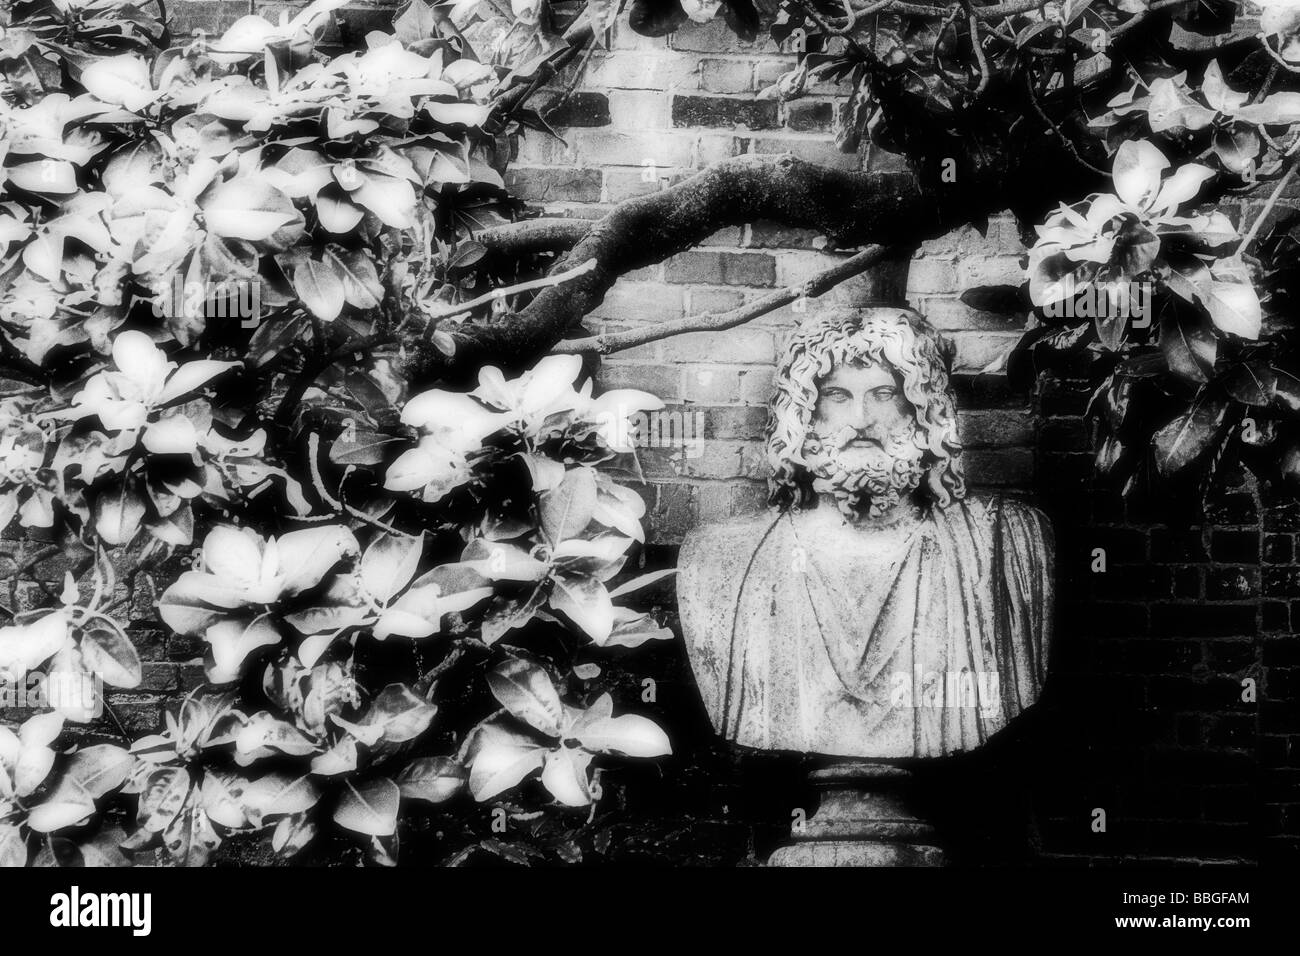 Infra red photo of garden statue in Winchester, Hampshire, England - Stock Image